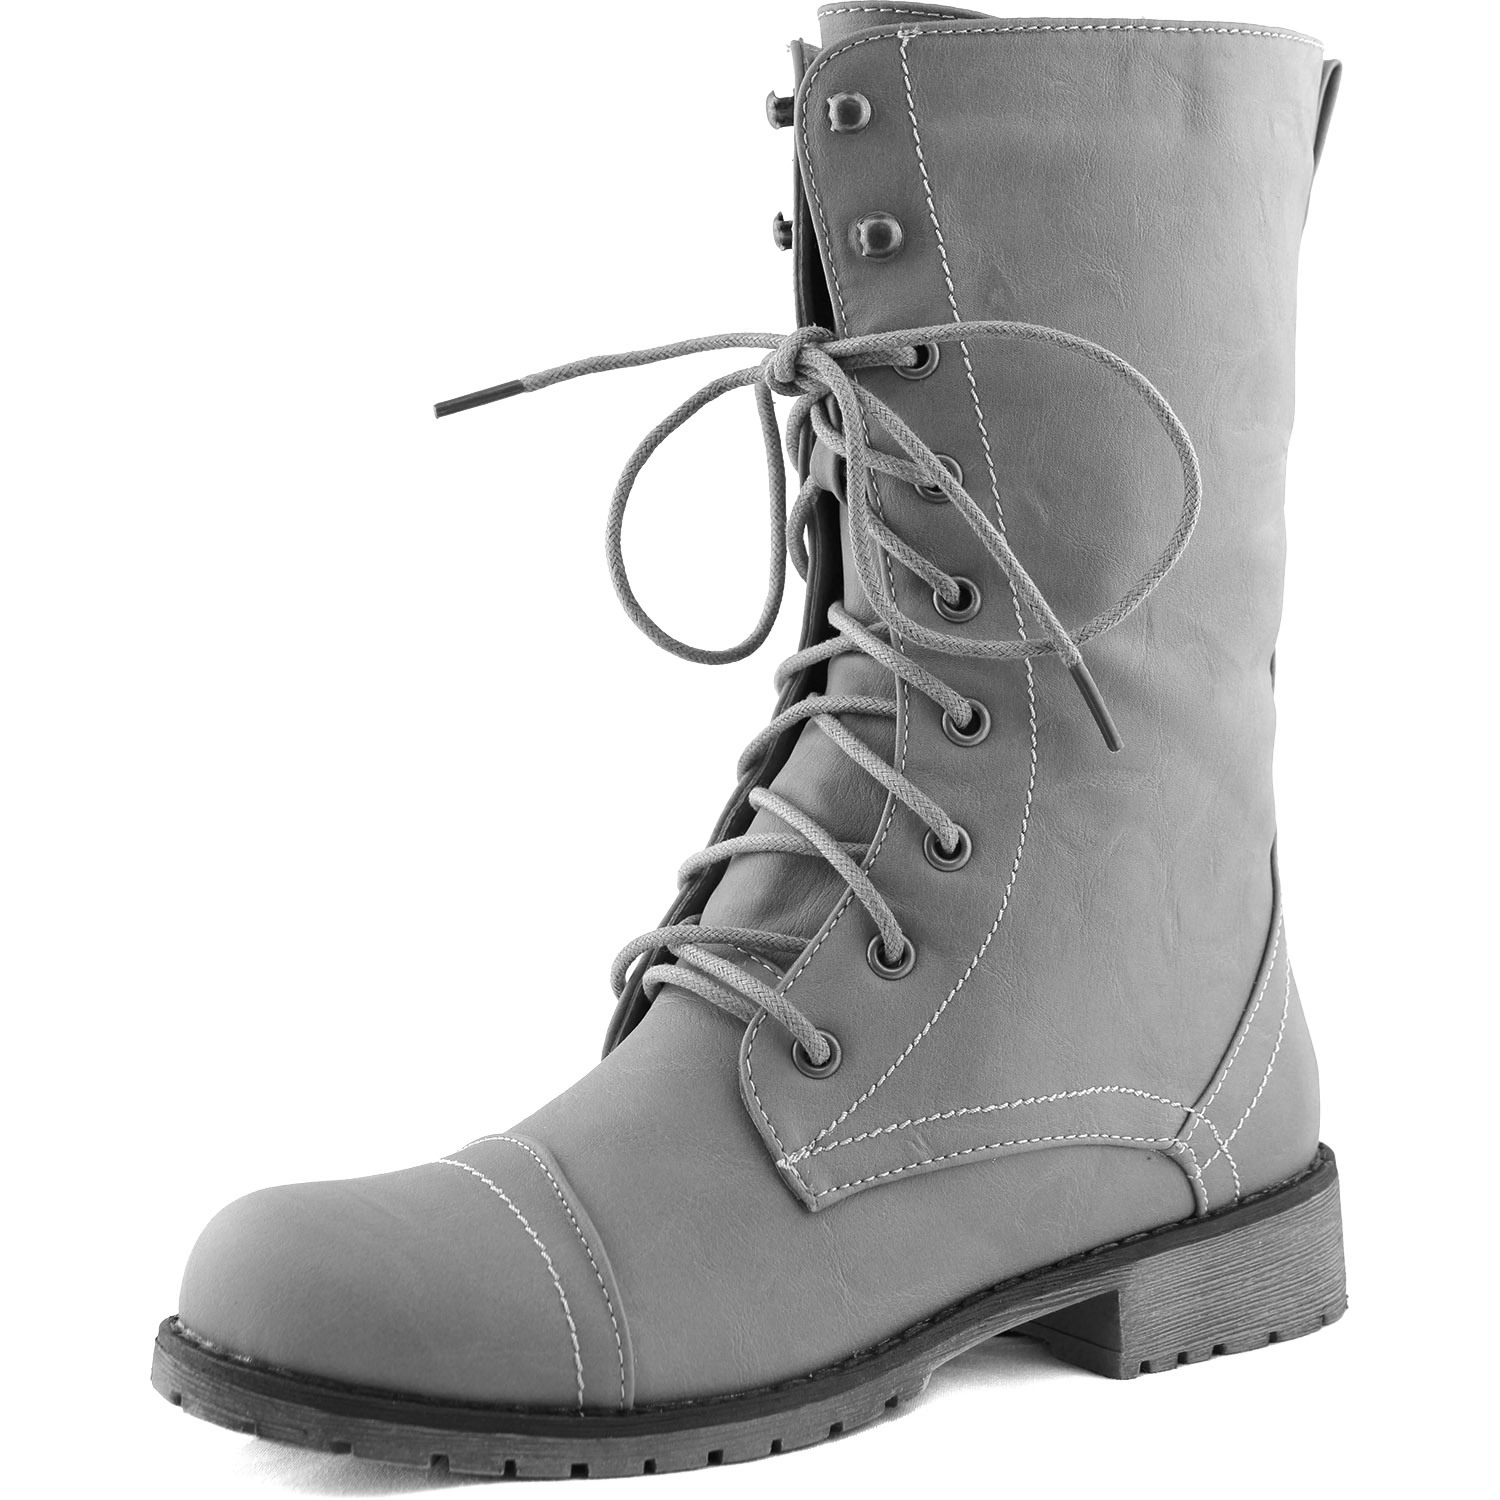 Gray Combat Boots r8iC84hD